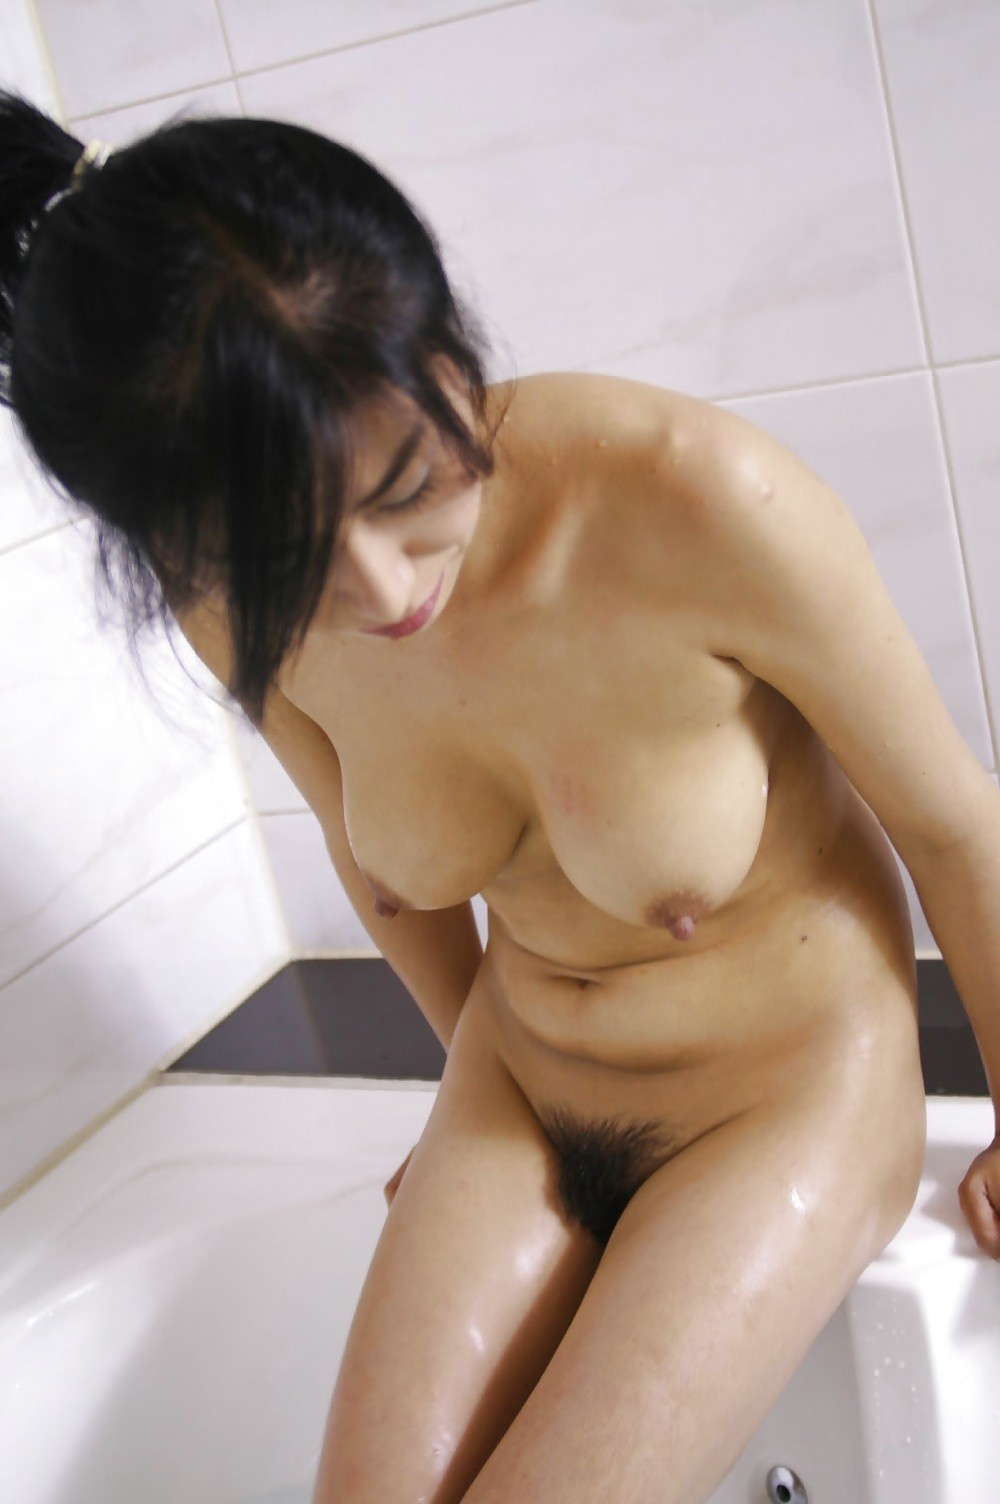 Remarkable, Big titty koreans nude